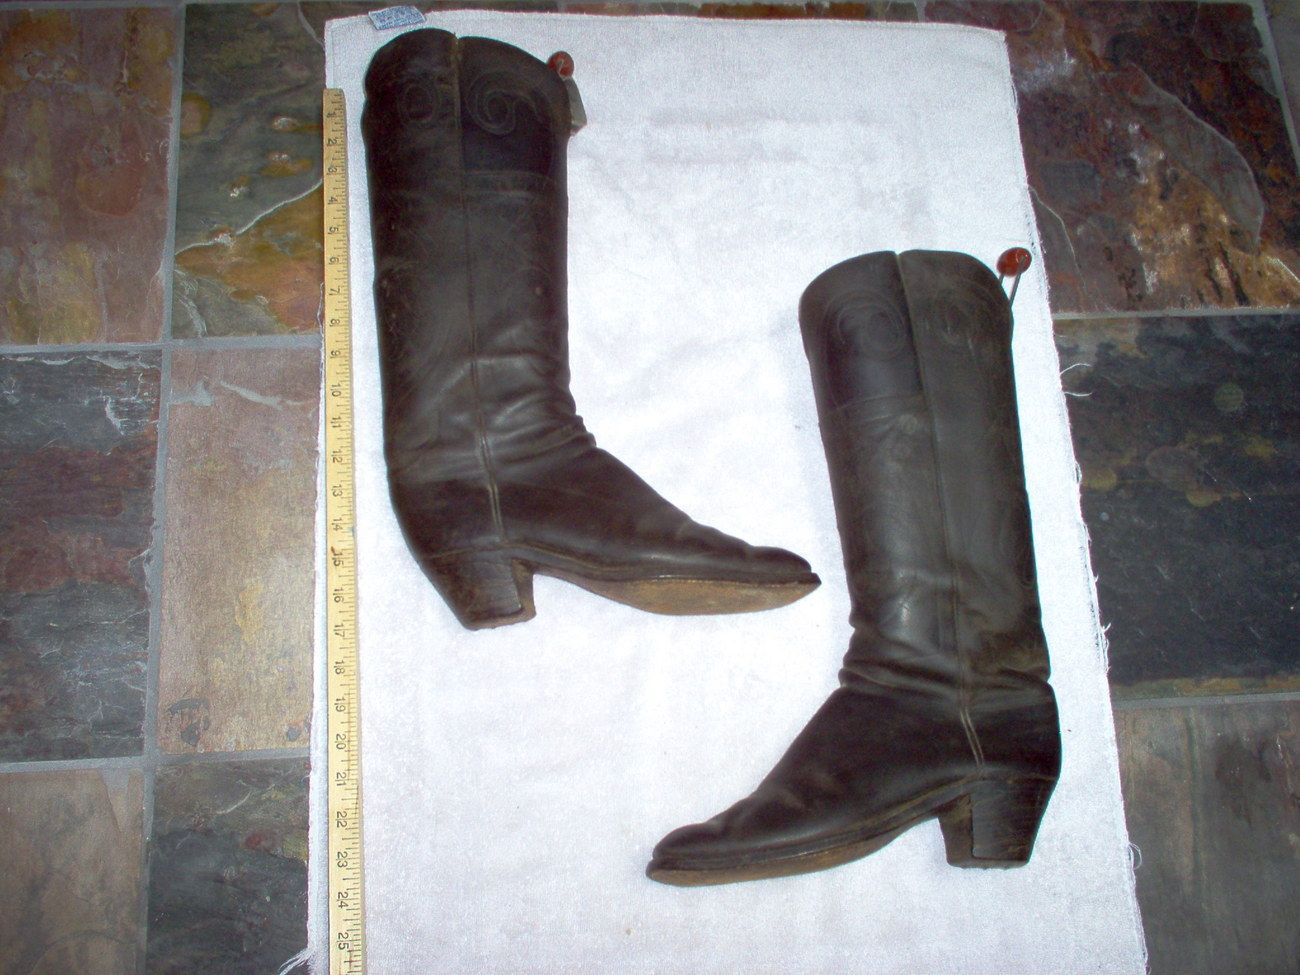 Antique Cowboy Boots From The 1880s